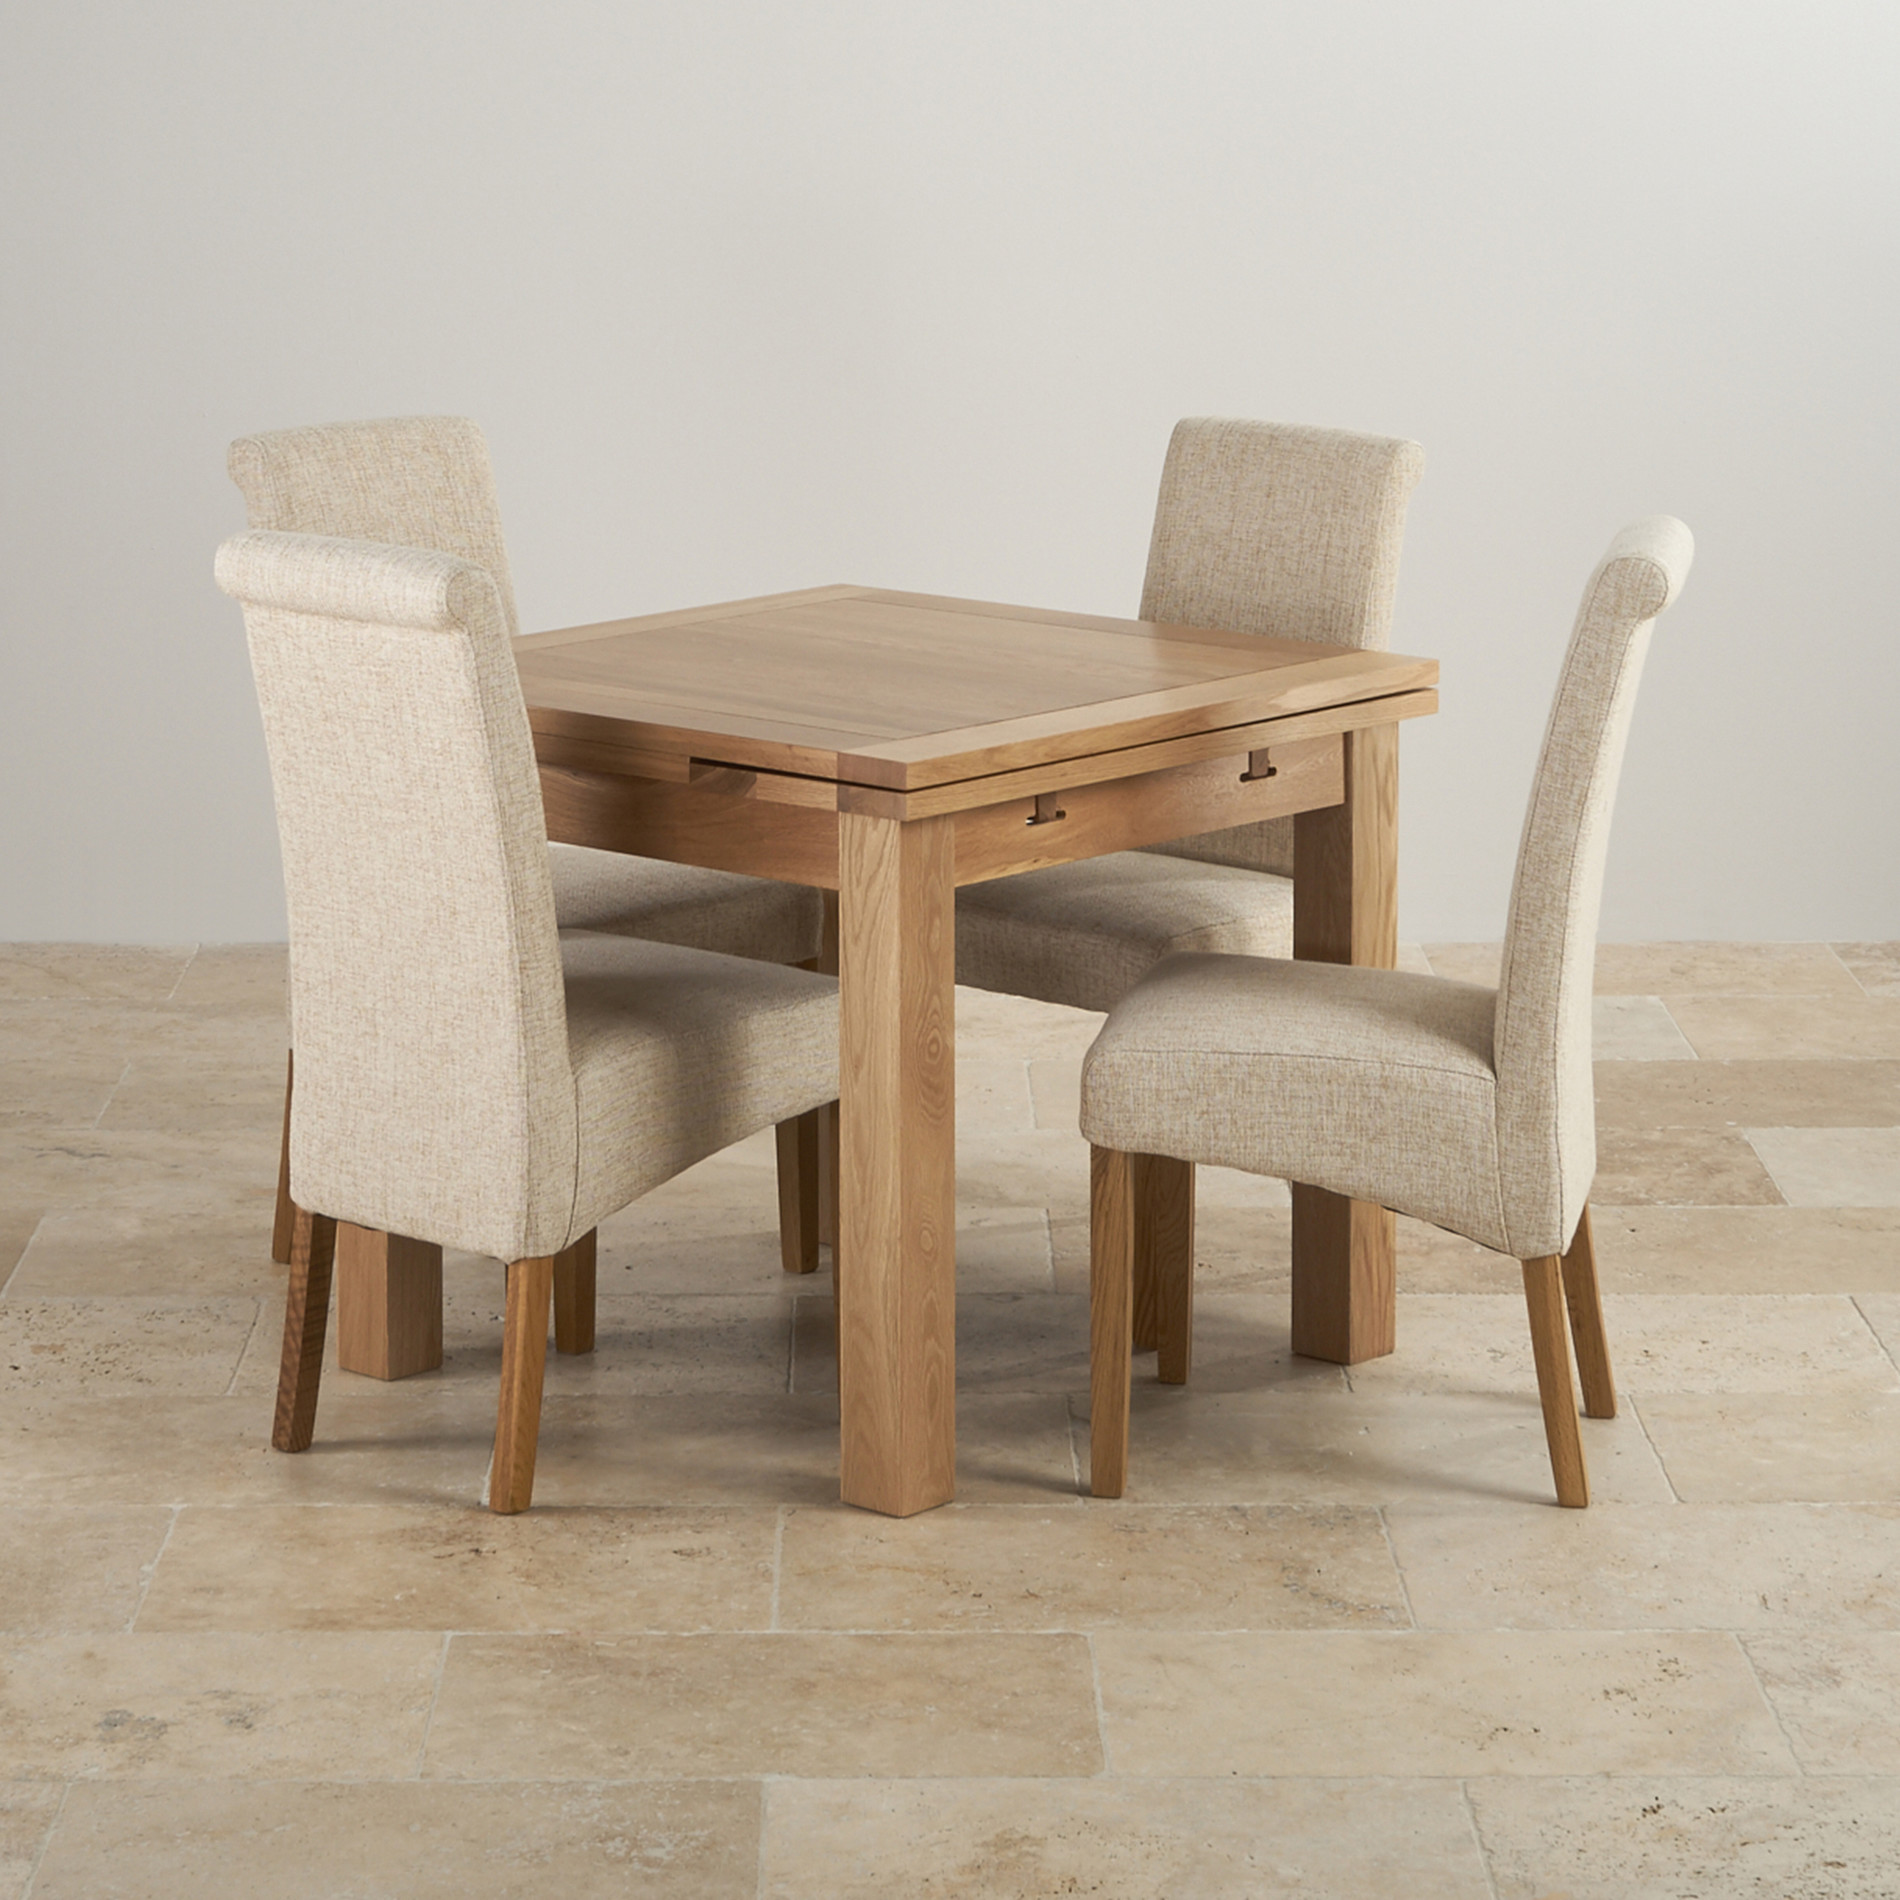 Dorset oak 3ft dining table with 4 beige fabric chairs - Dining table and fabric chairs ...